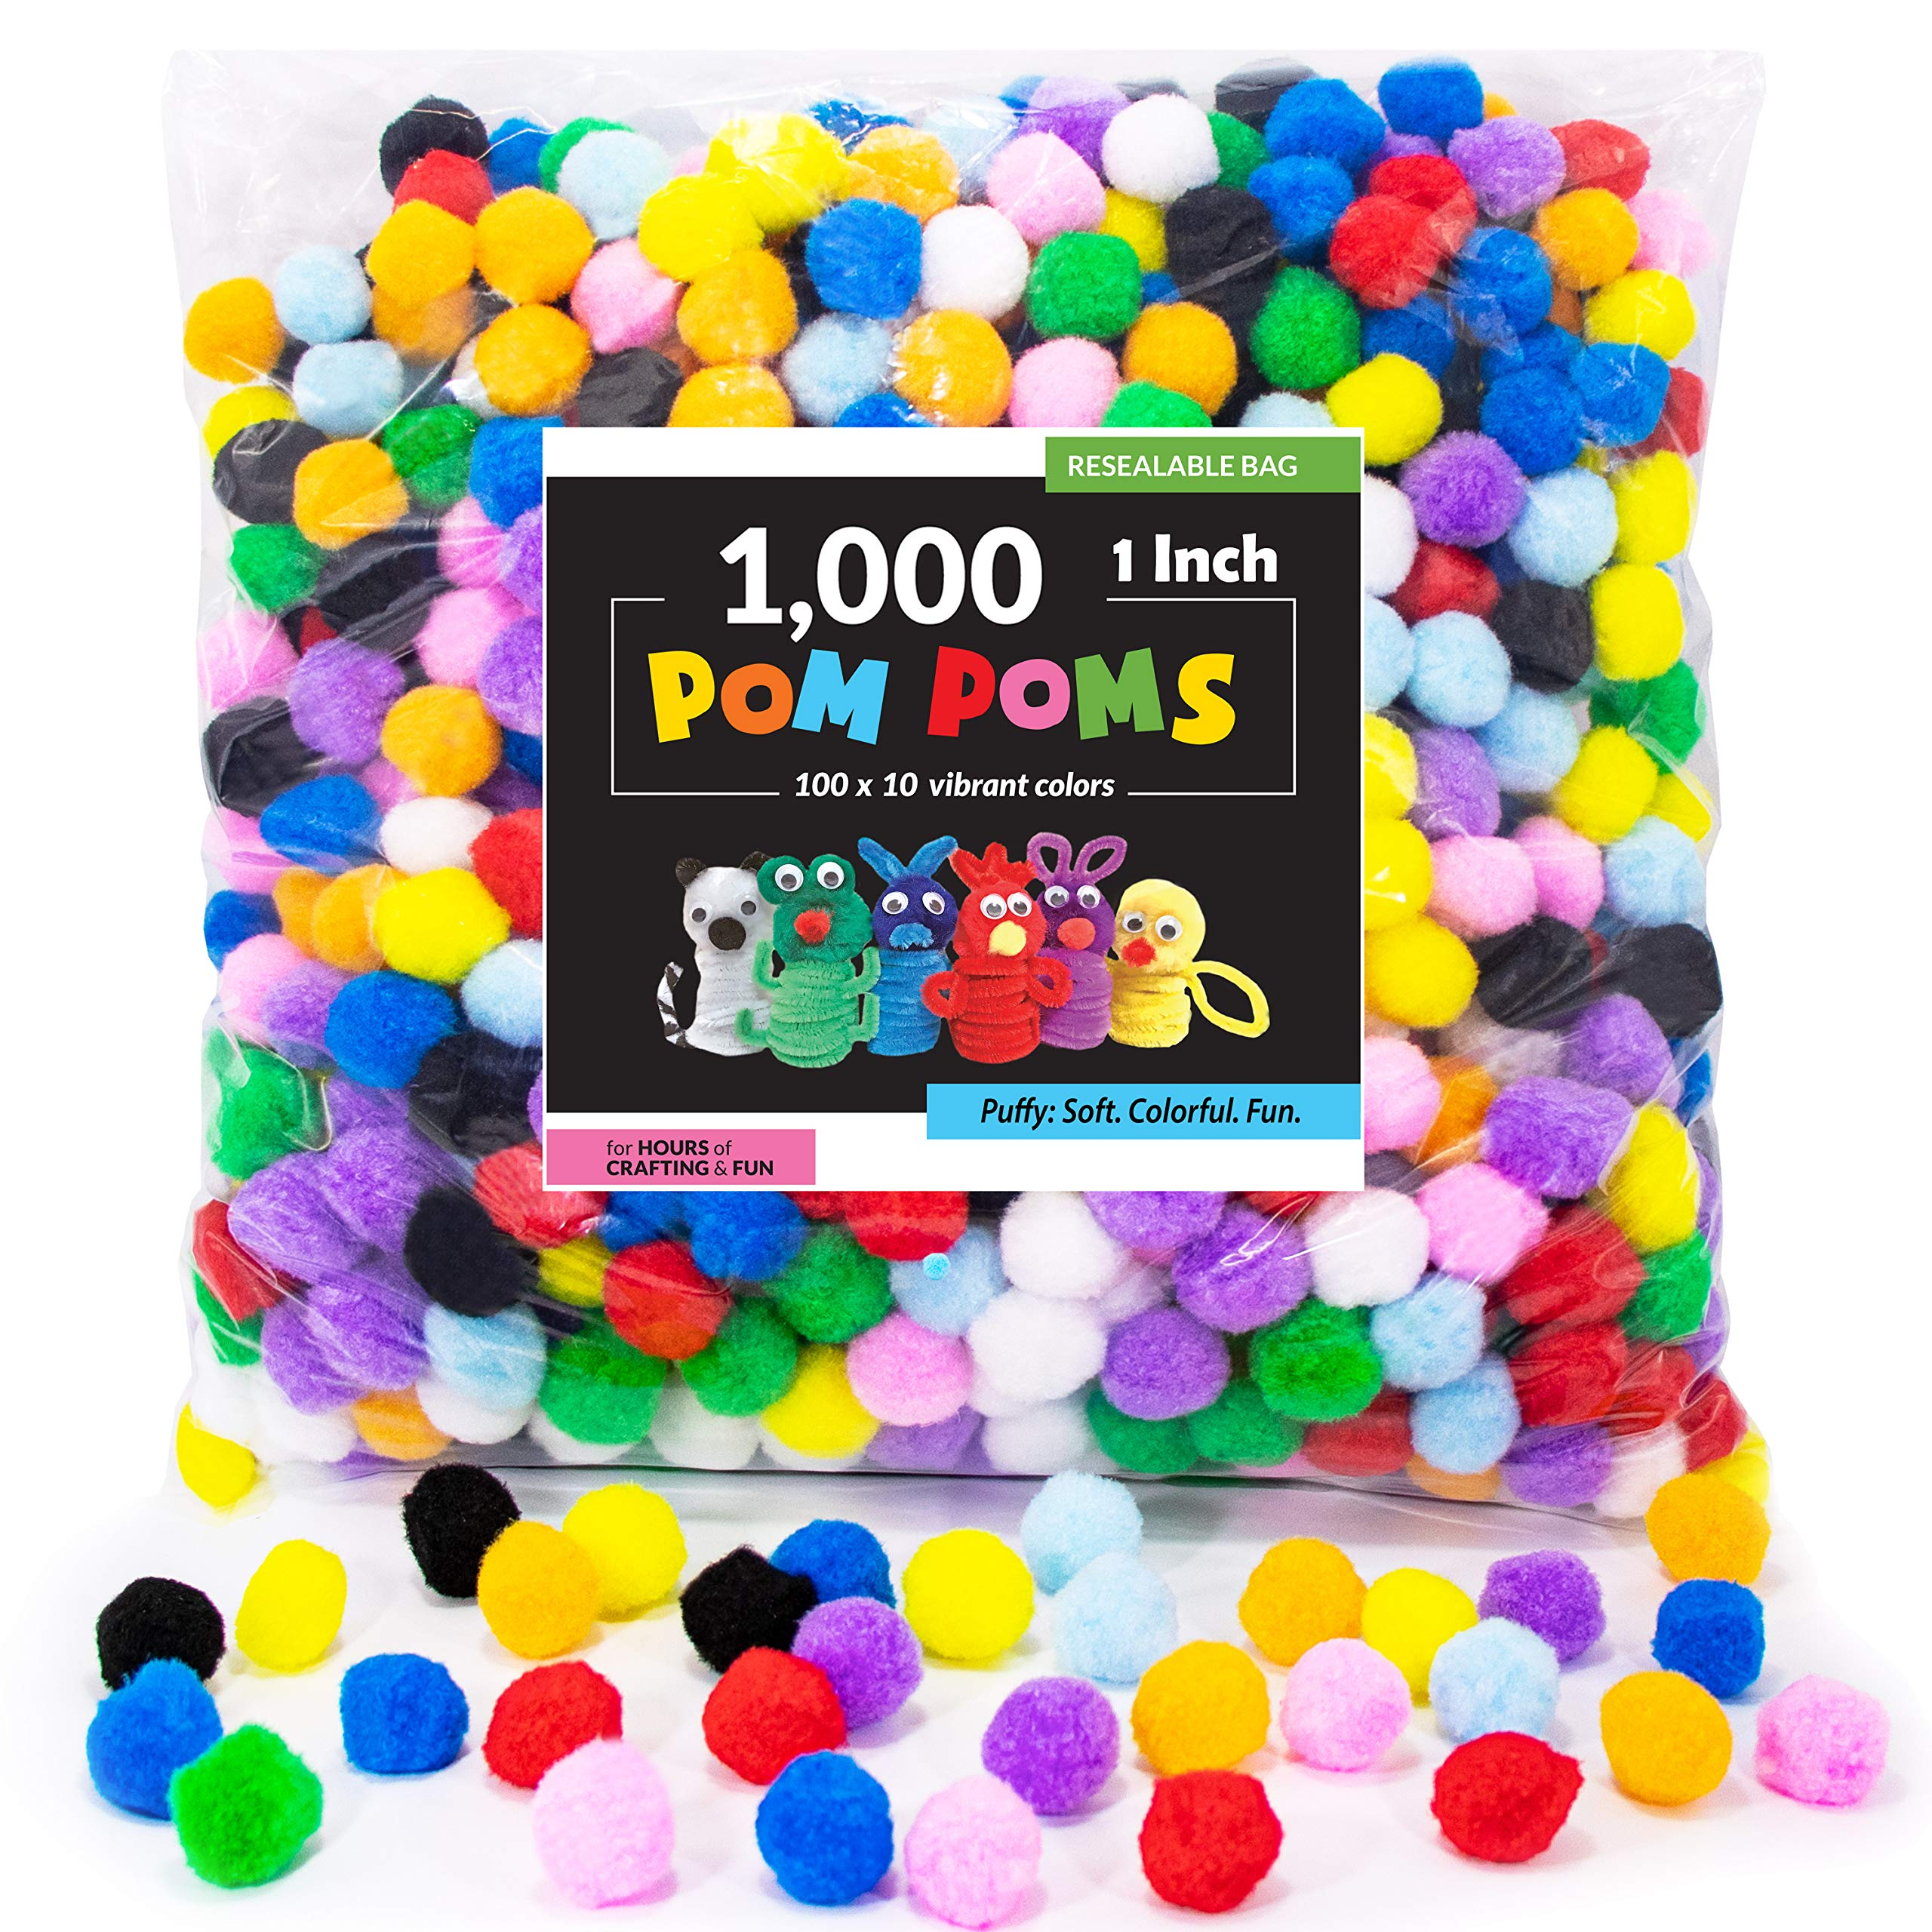 1000 Pieces 1 Inch Pom Poms for Crafts 10 Assorted Colors Separated by Bag Pom Poms Best Puff Balls by Upper Midland Products